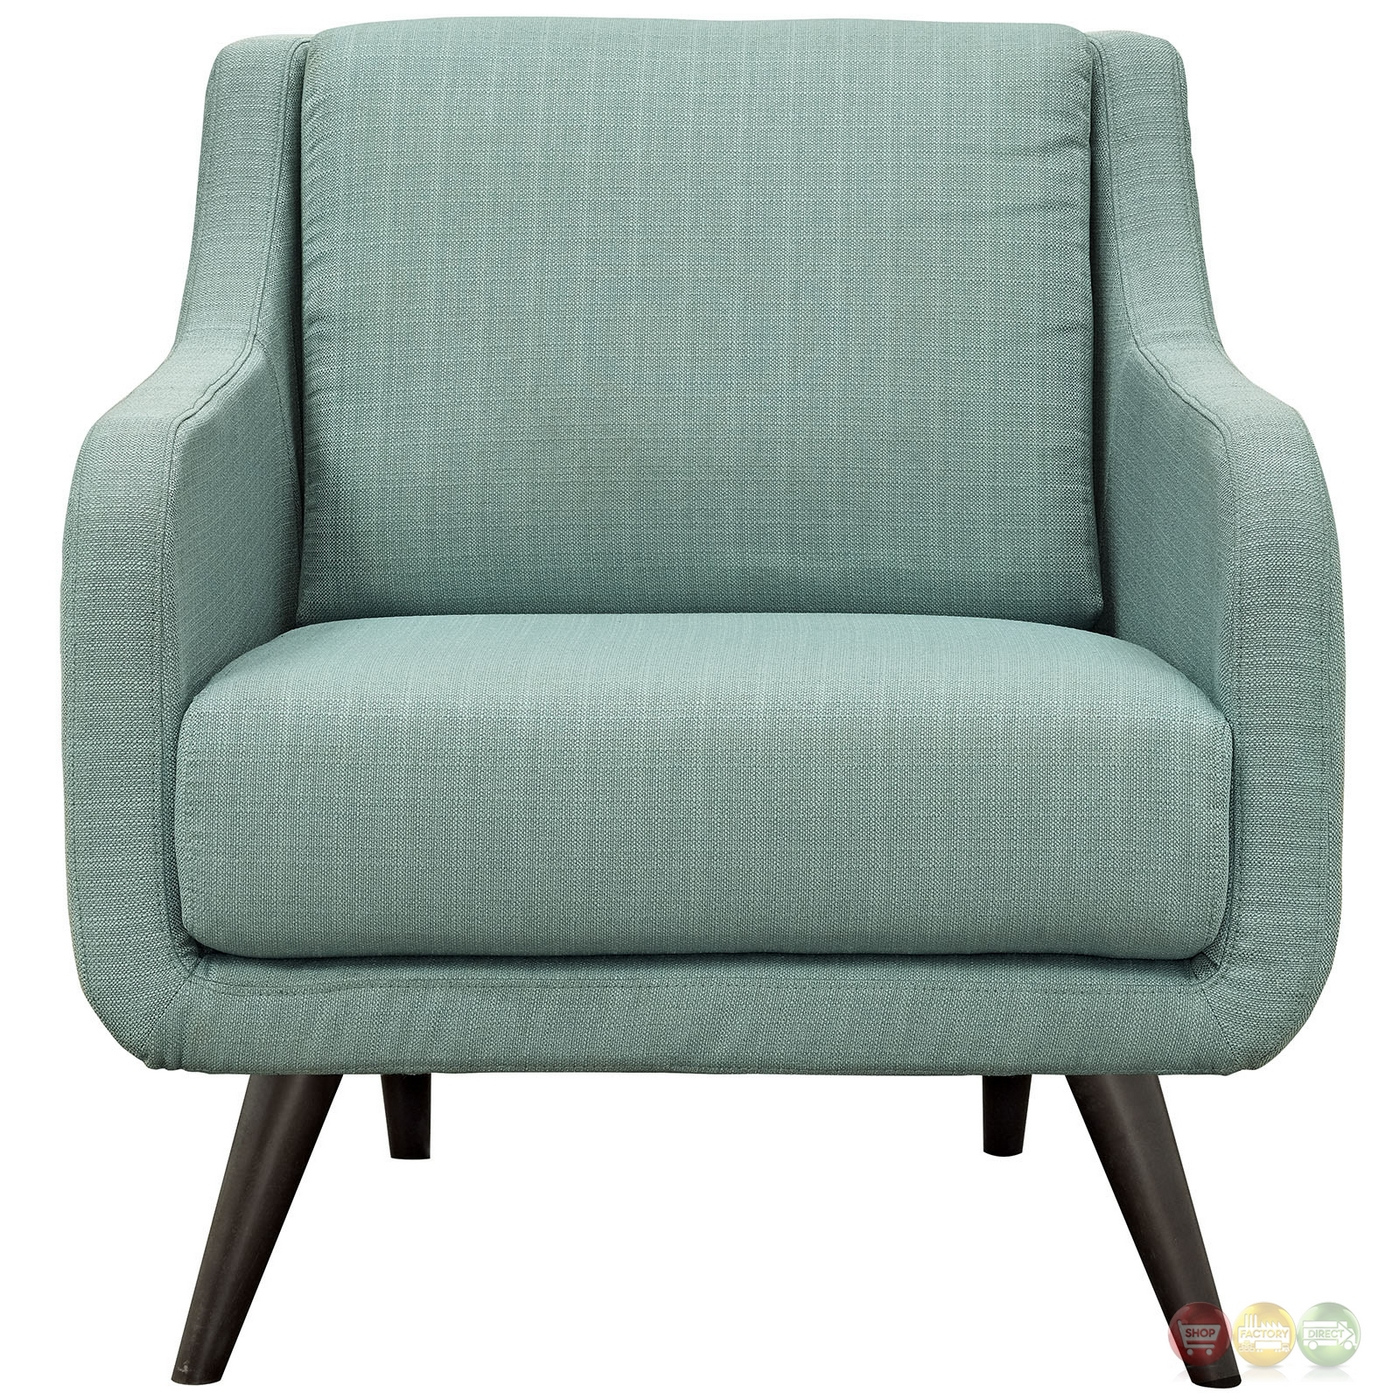 Verve Mid-century Modern Upholstered Armchair With Wood ...